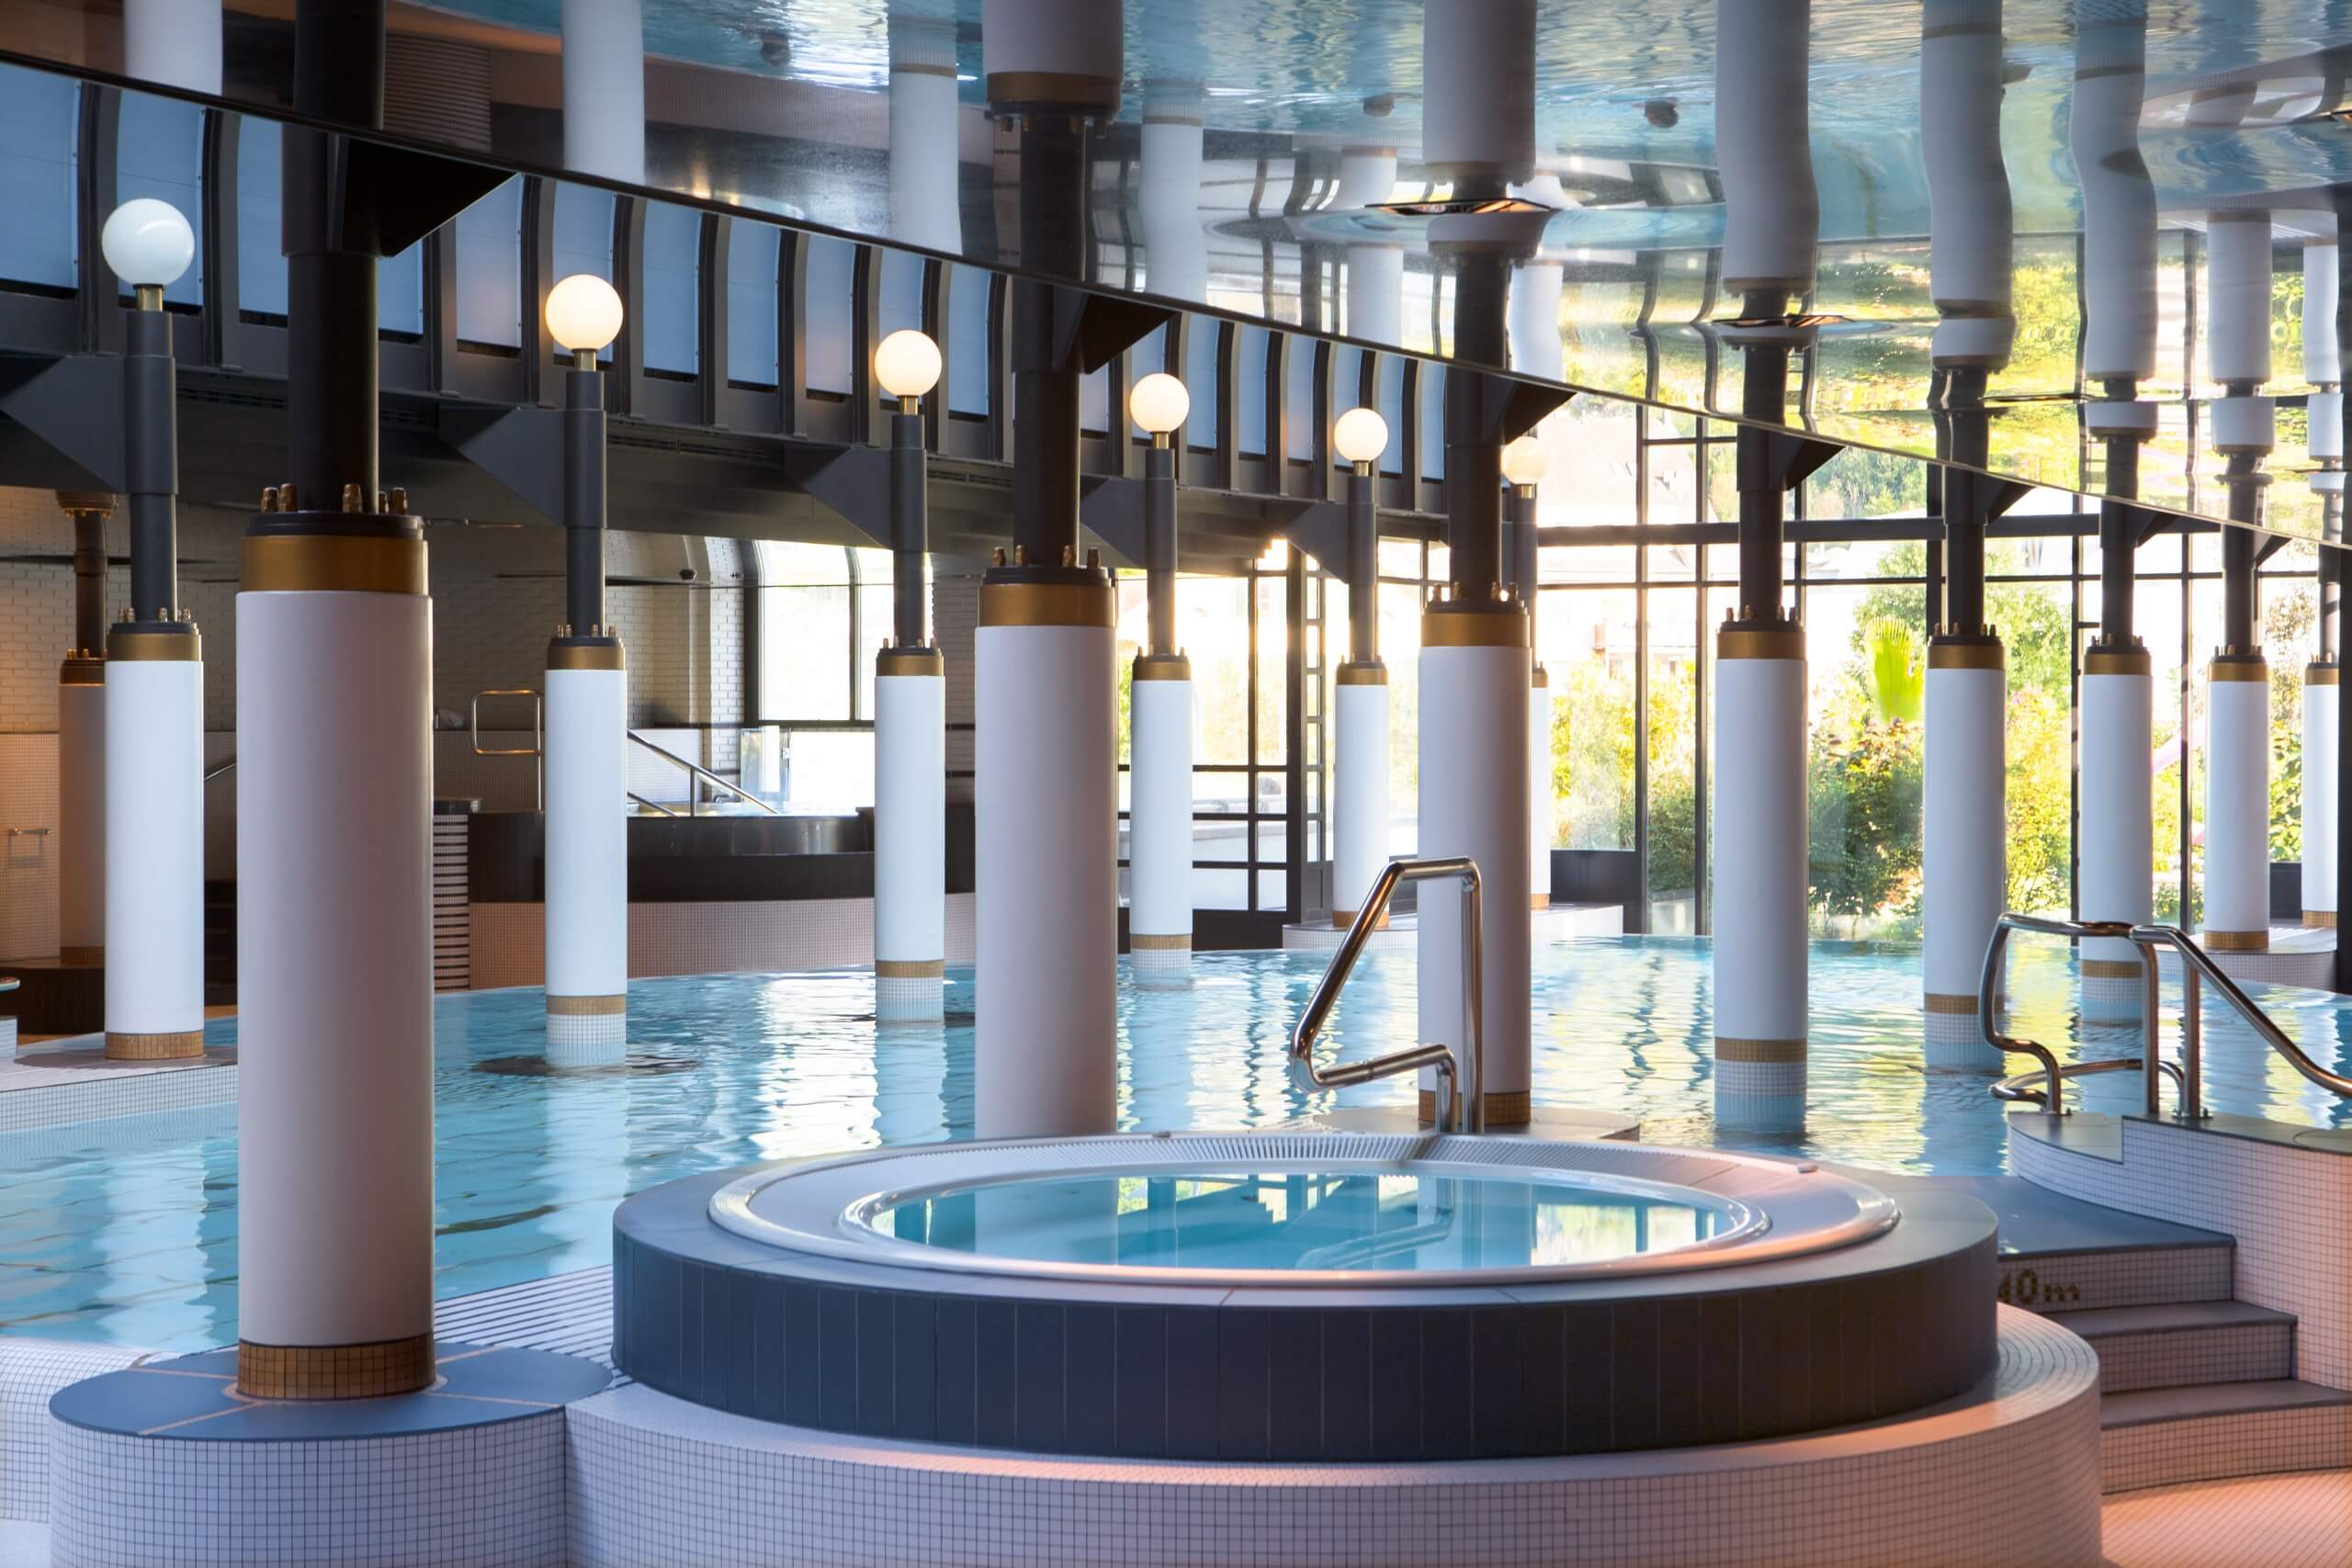 vj-spa-nescens-innenbad-baden-wellness